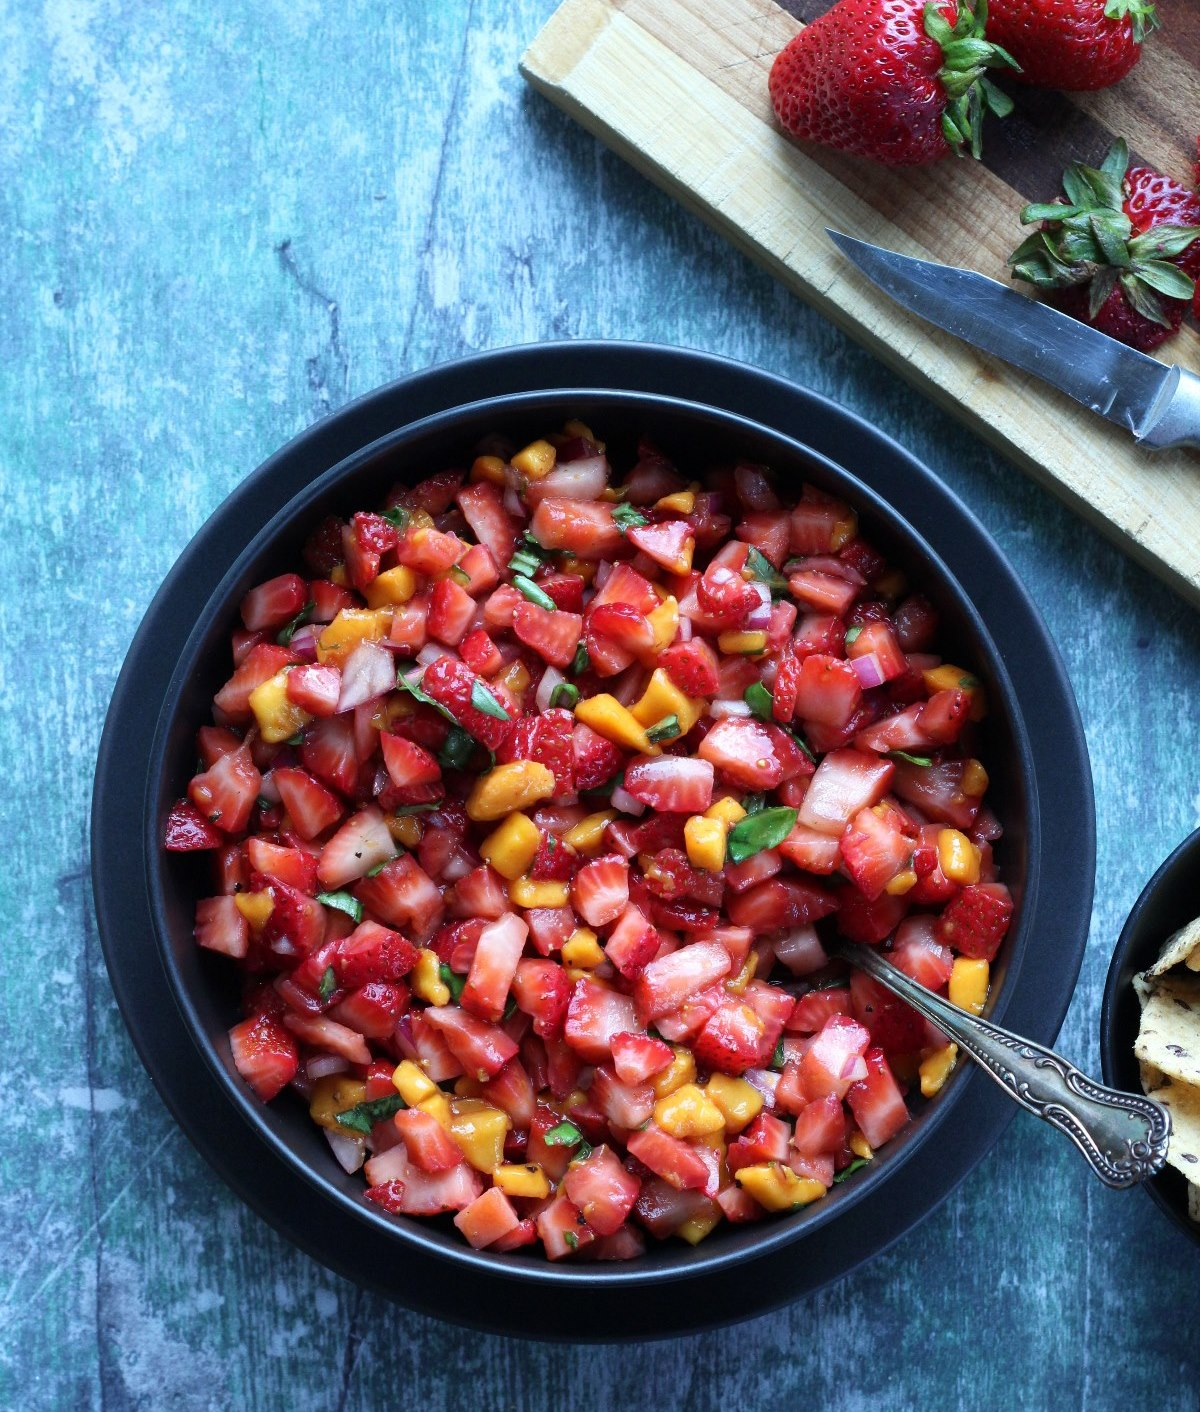 Diced strawberries as a salsa in a black bowl on a greenish background